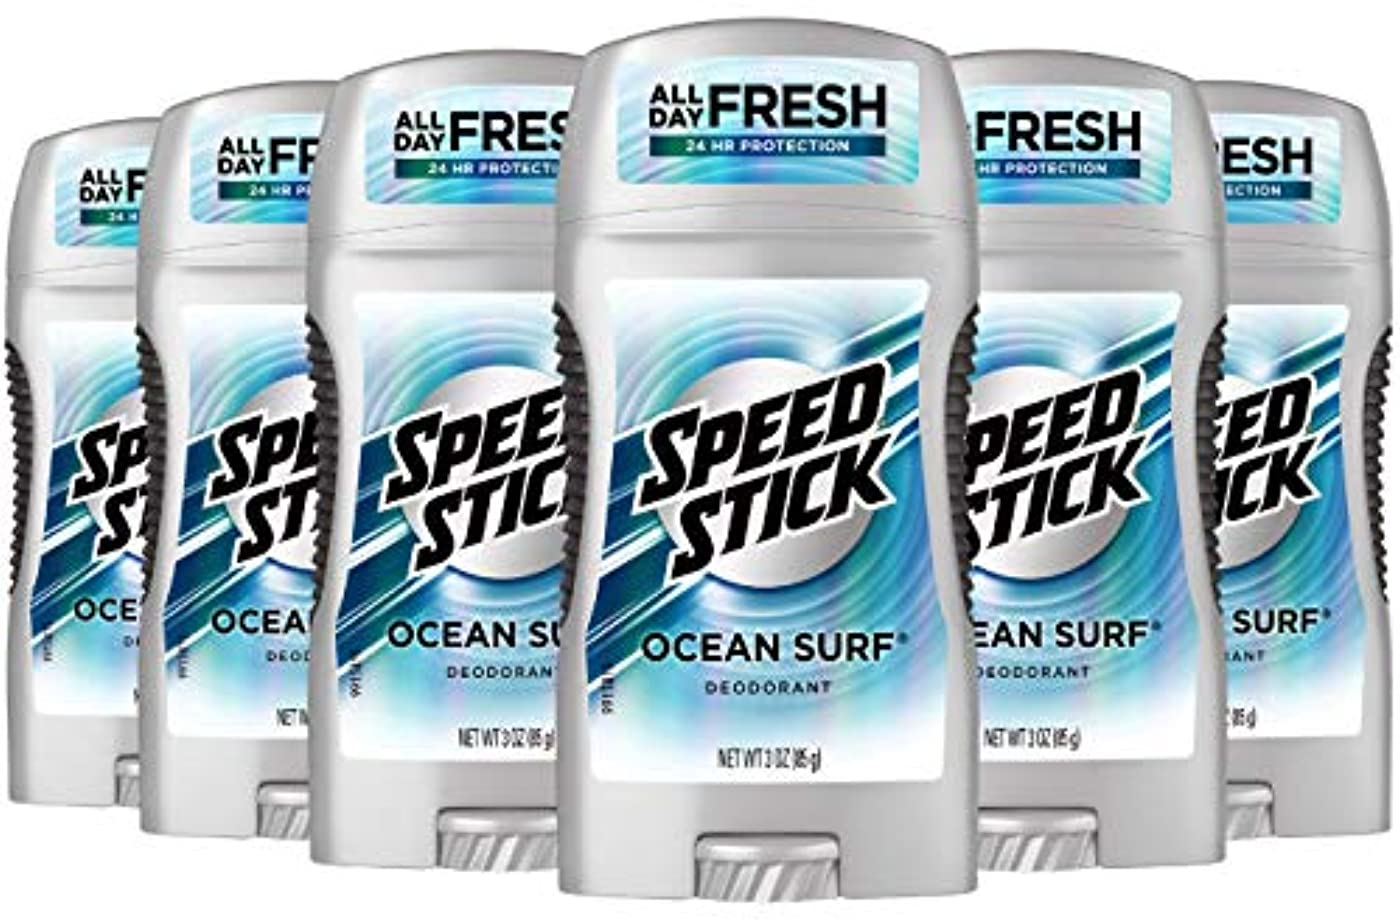 彫刻避難グリットSpeed Stick Deodorant, Ocean Surf 88 ml (Pack of 6) (並行輸入品)